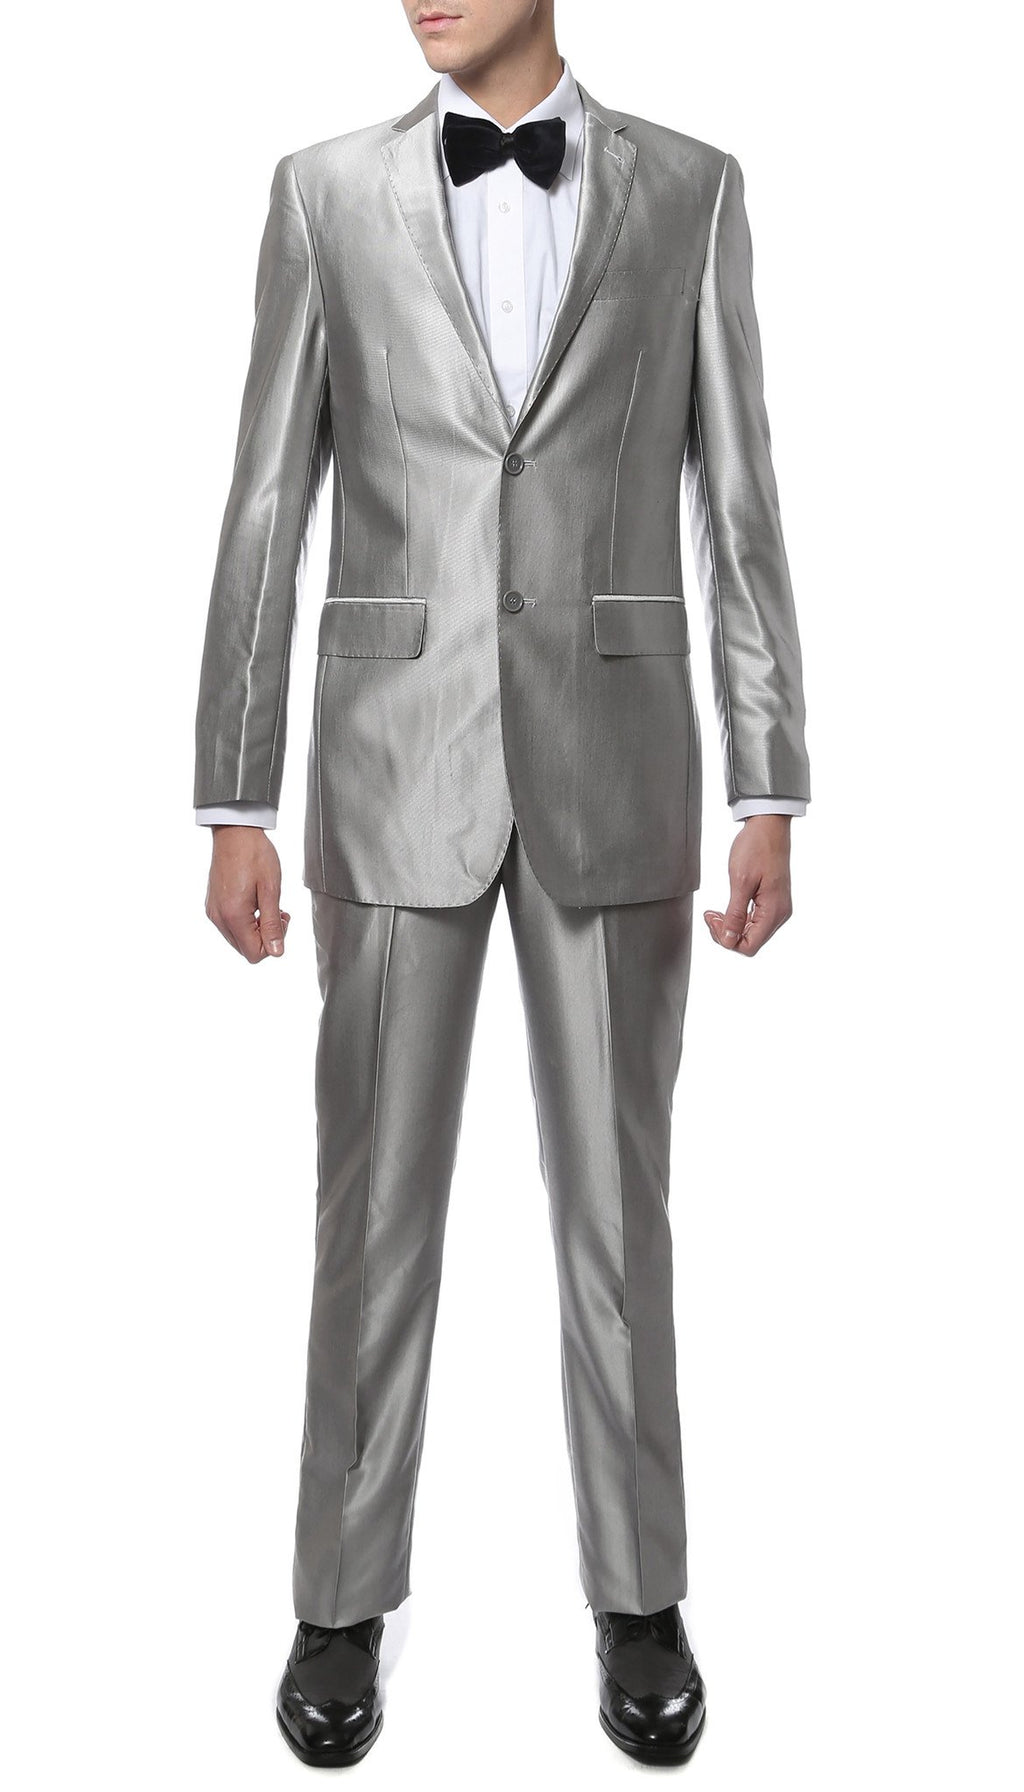 Oxford Silver Sharkskin Slim Fit Suit - Giorgio's Menswear